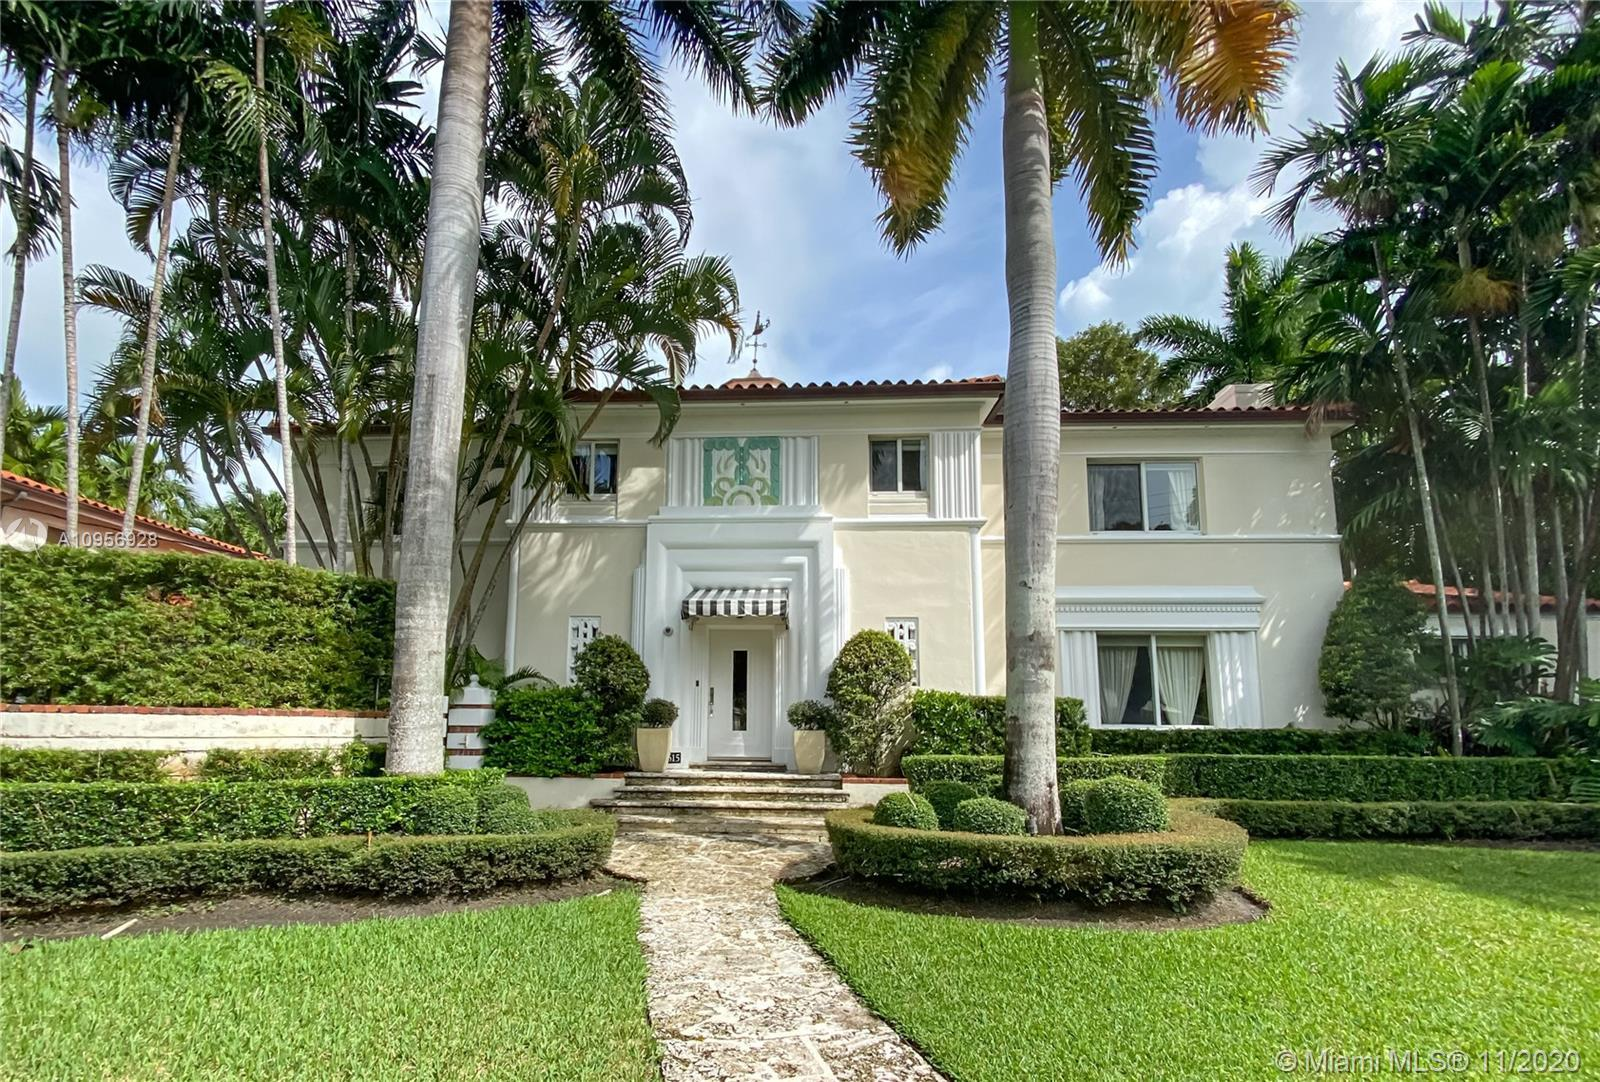 Exceptional 1928 Art Deco residence by renowned South Beach architect, Henry Hohauser. Fall in love